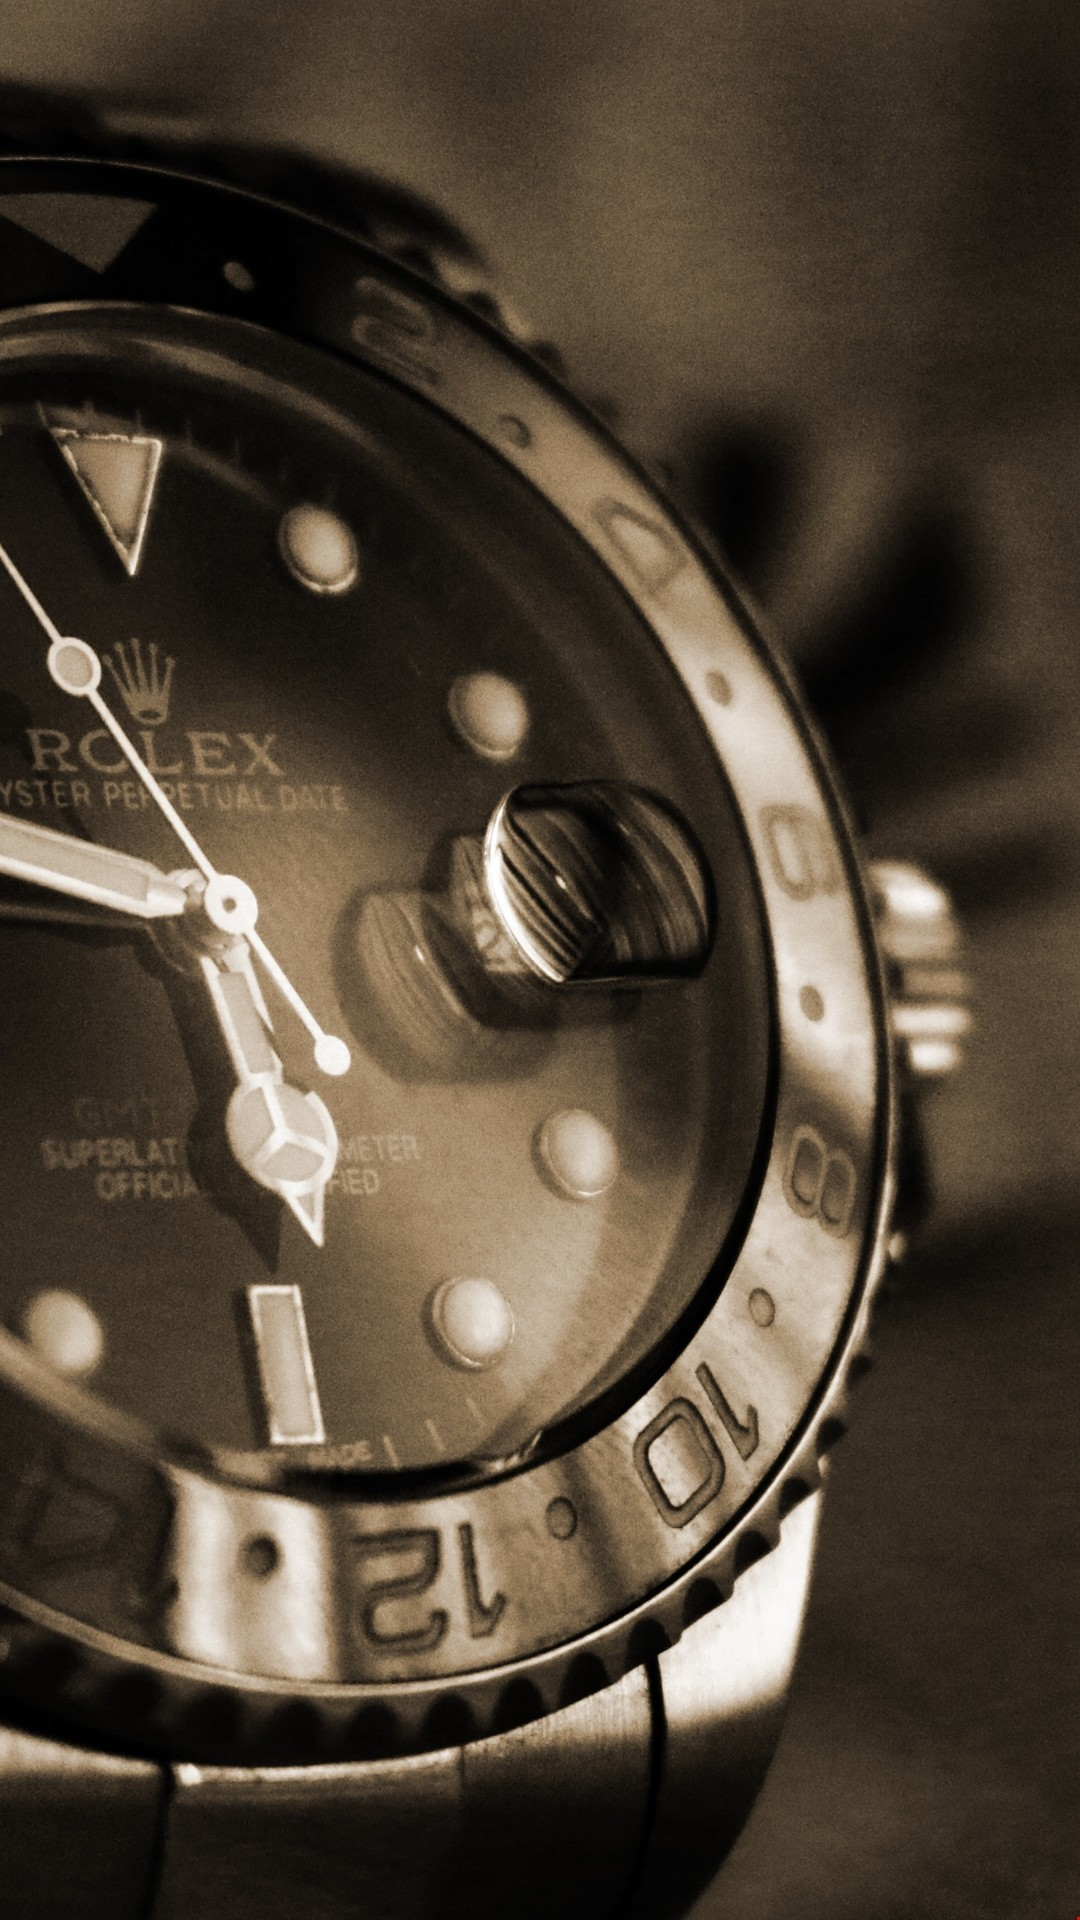 Res: 1080x1920, 1920x1080 Rolex Submariner Ref.114060 by By Leica T typ701 +  ApoMacroElmarit-R 100mm F2.8 - YouTube